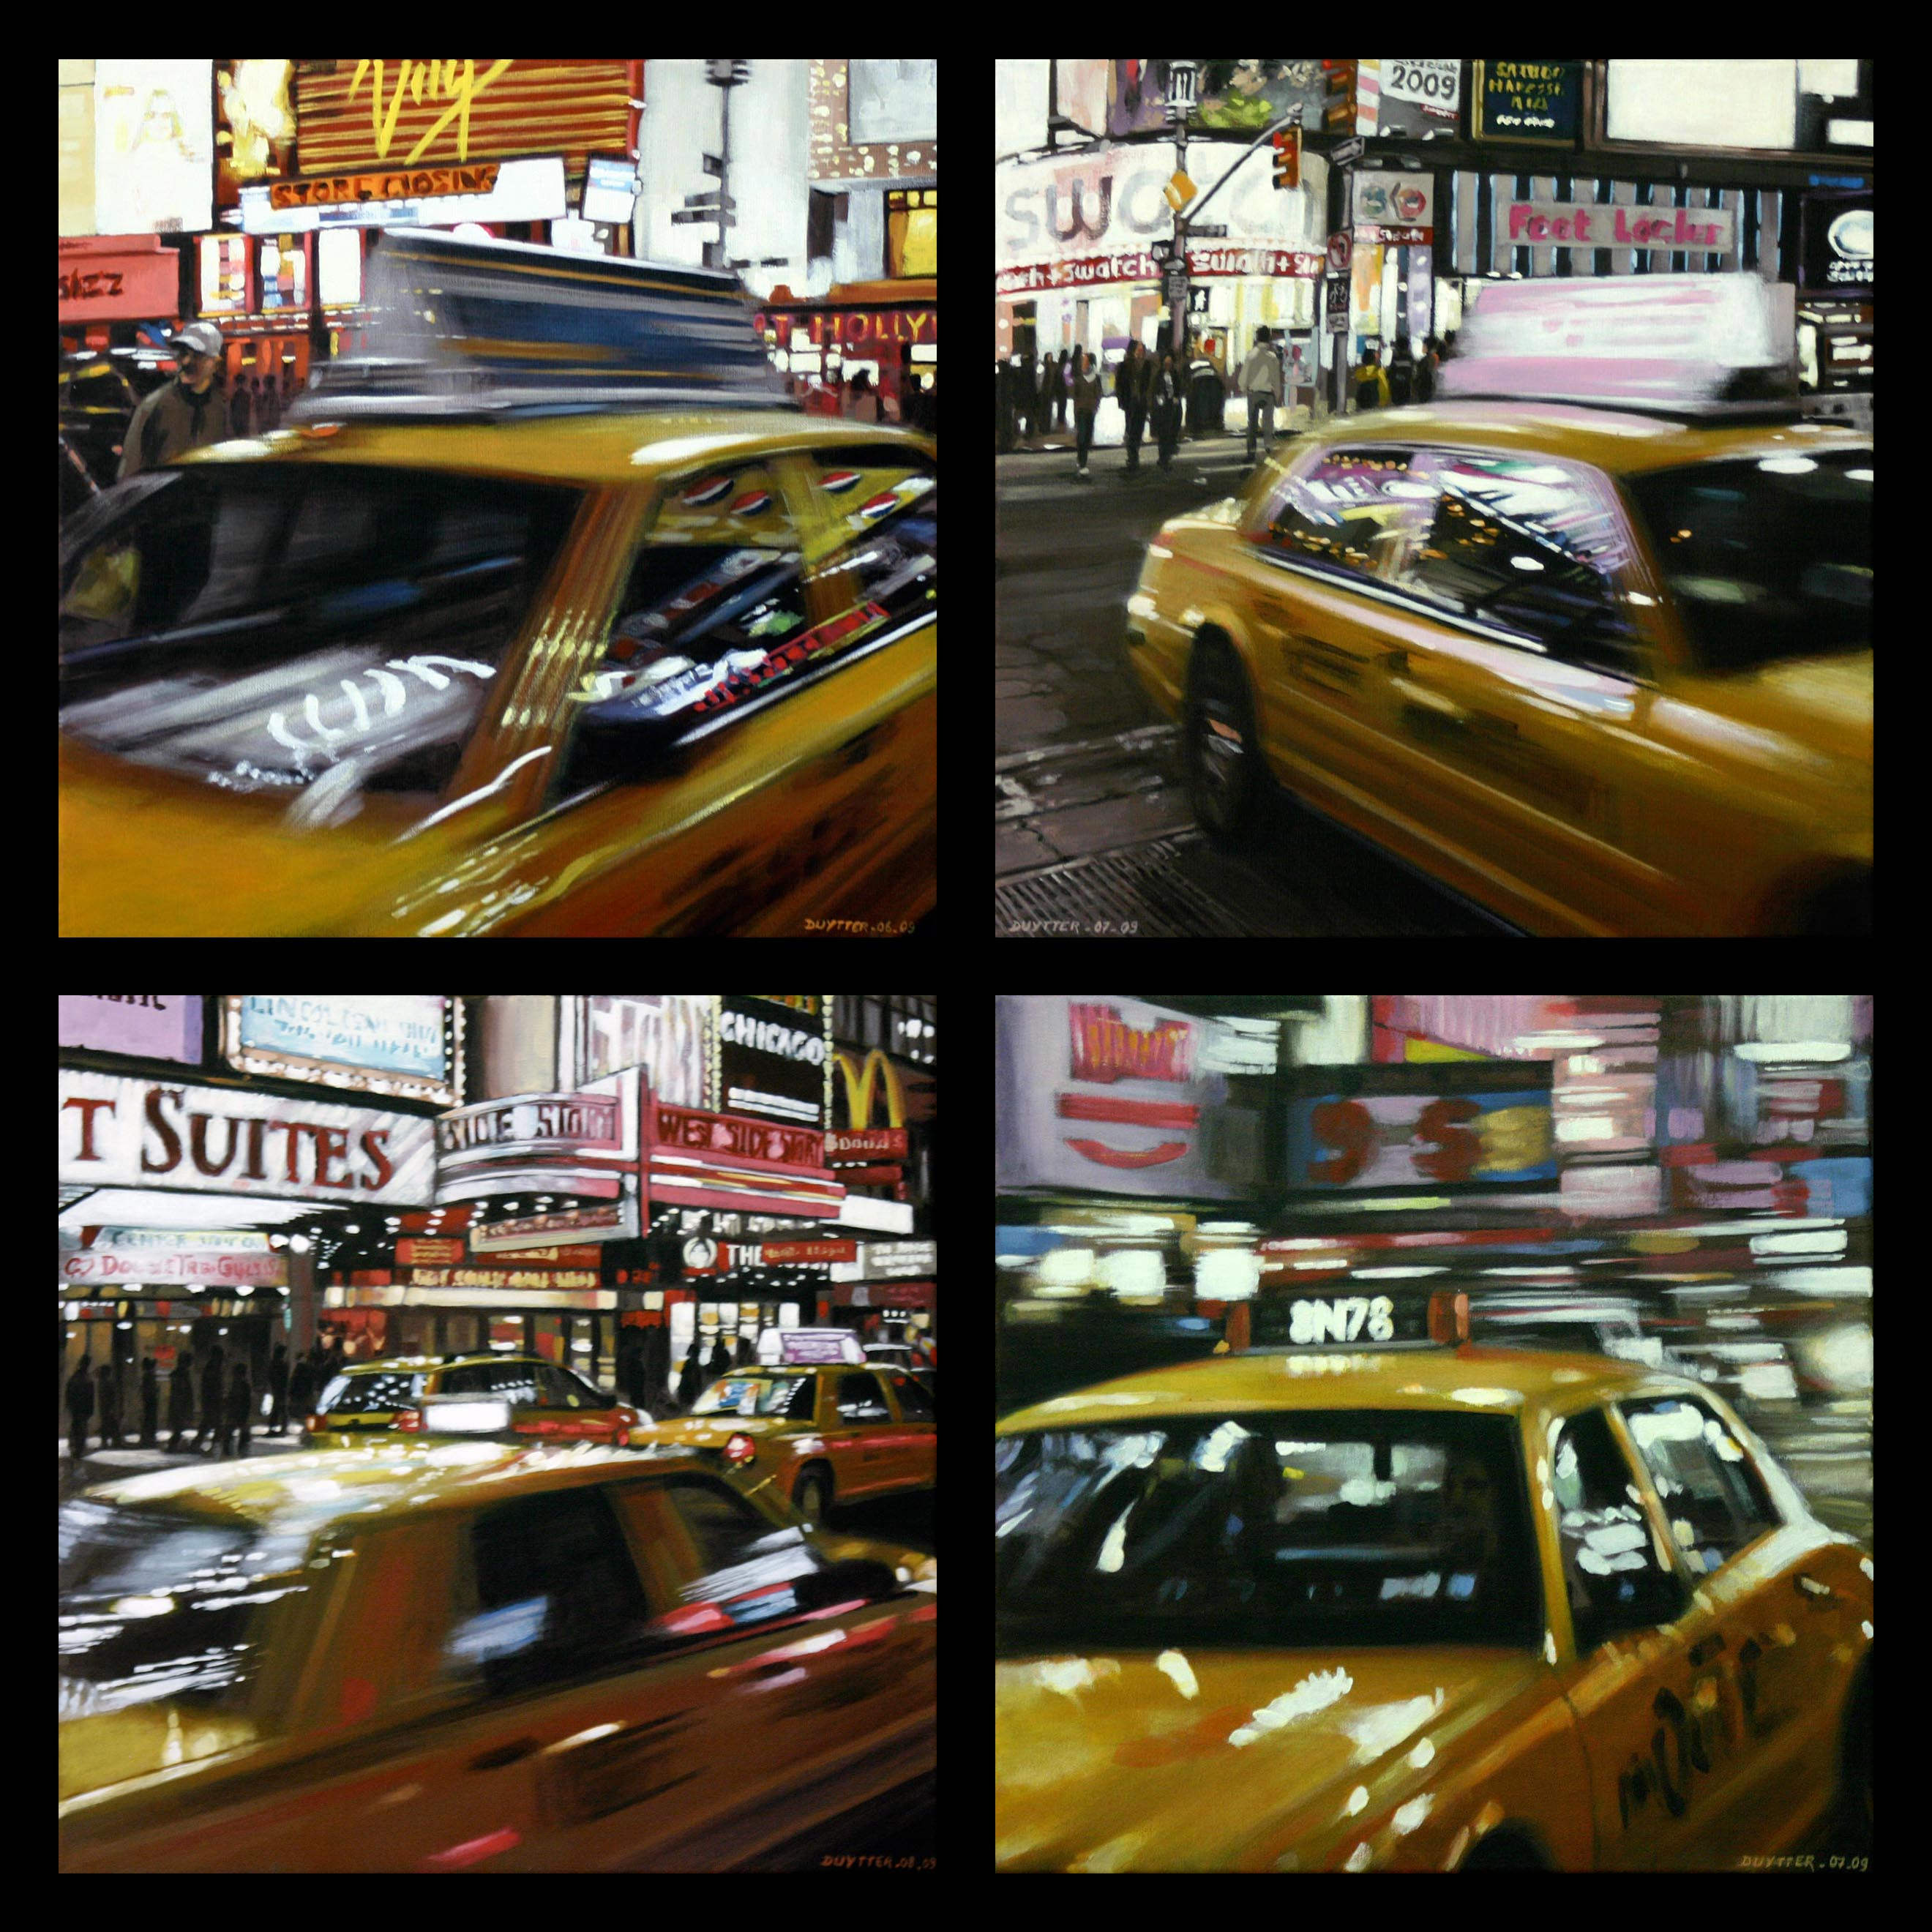 Speeding Yellow Cab - Vendu